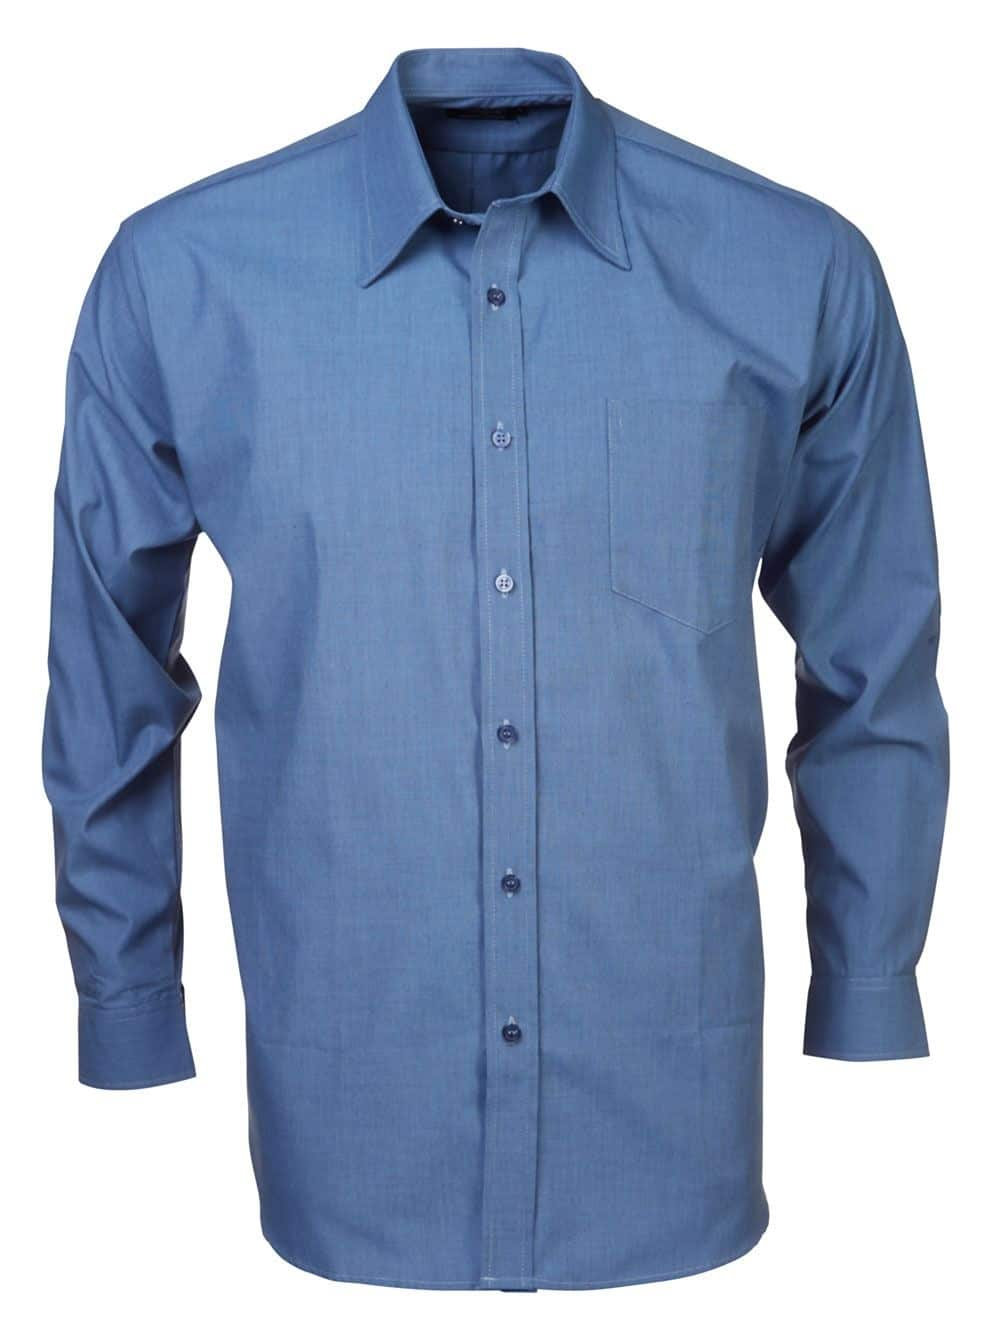 G01 Classic S/S SHIRT Lounge Shirts and Blouses